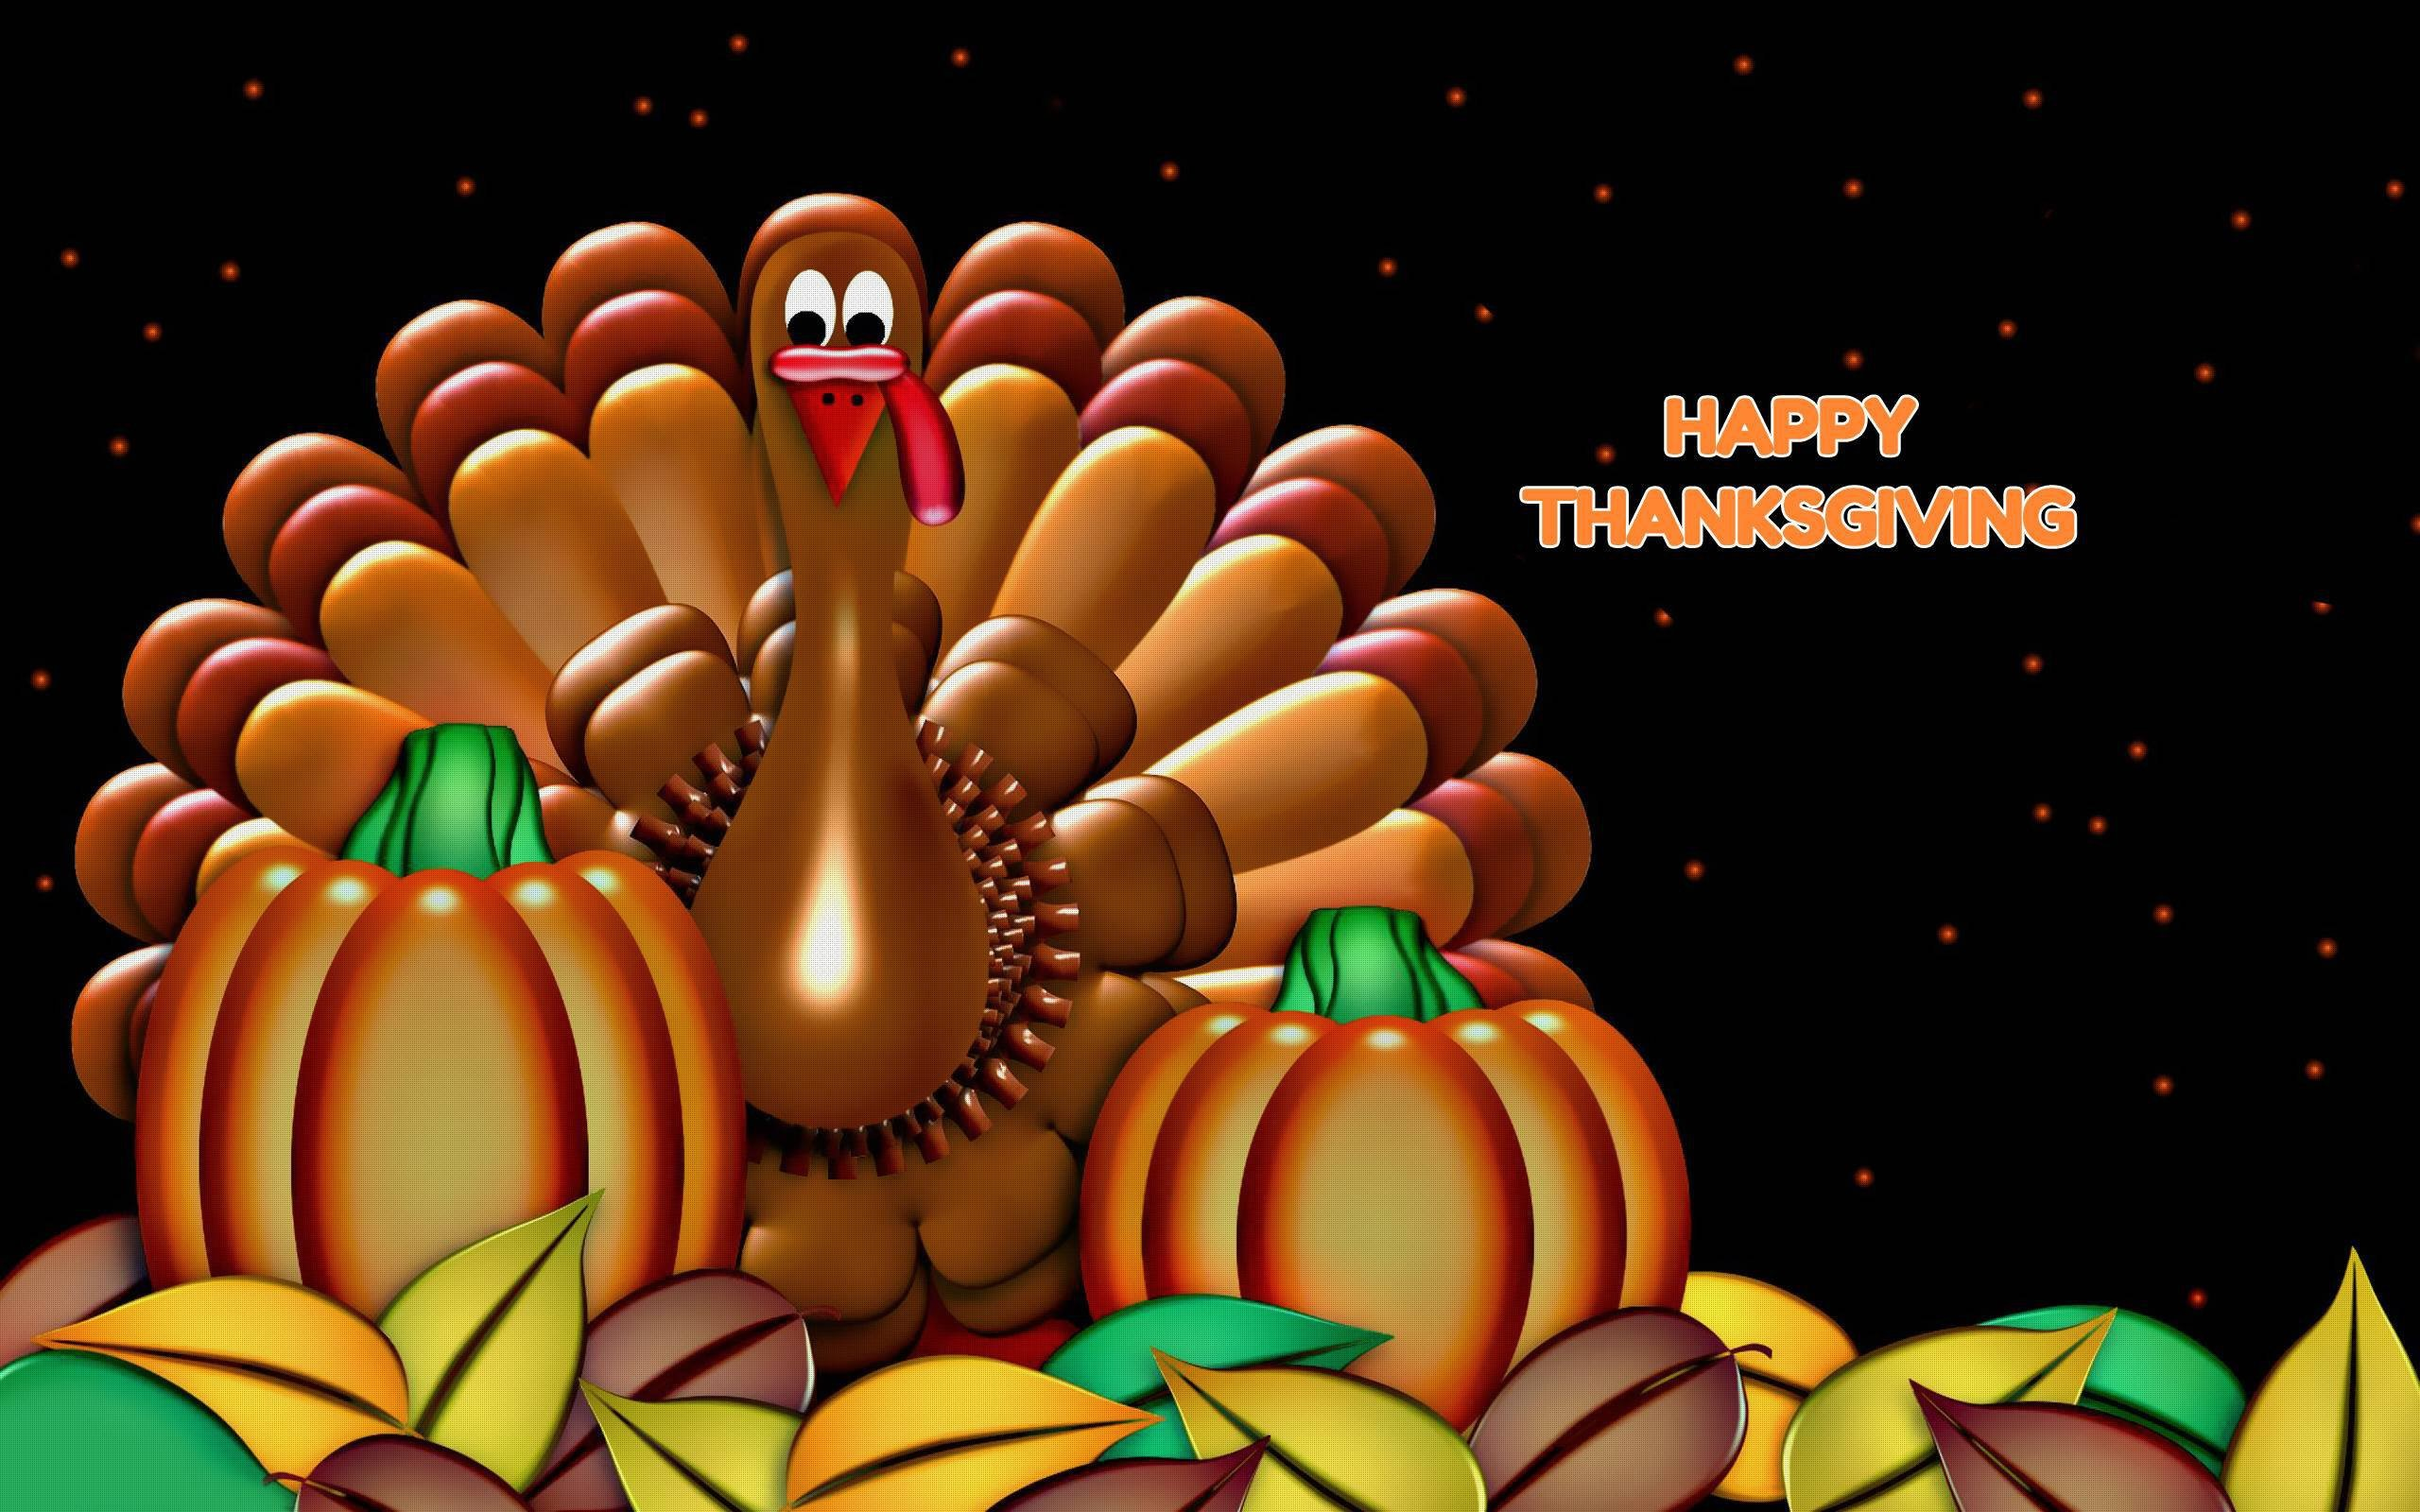 Hd 3d Thanksgiving Wallpapers - Happy Thanksgiving Wallpaper Hd - HD Wallpaper